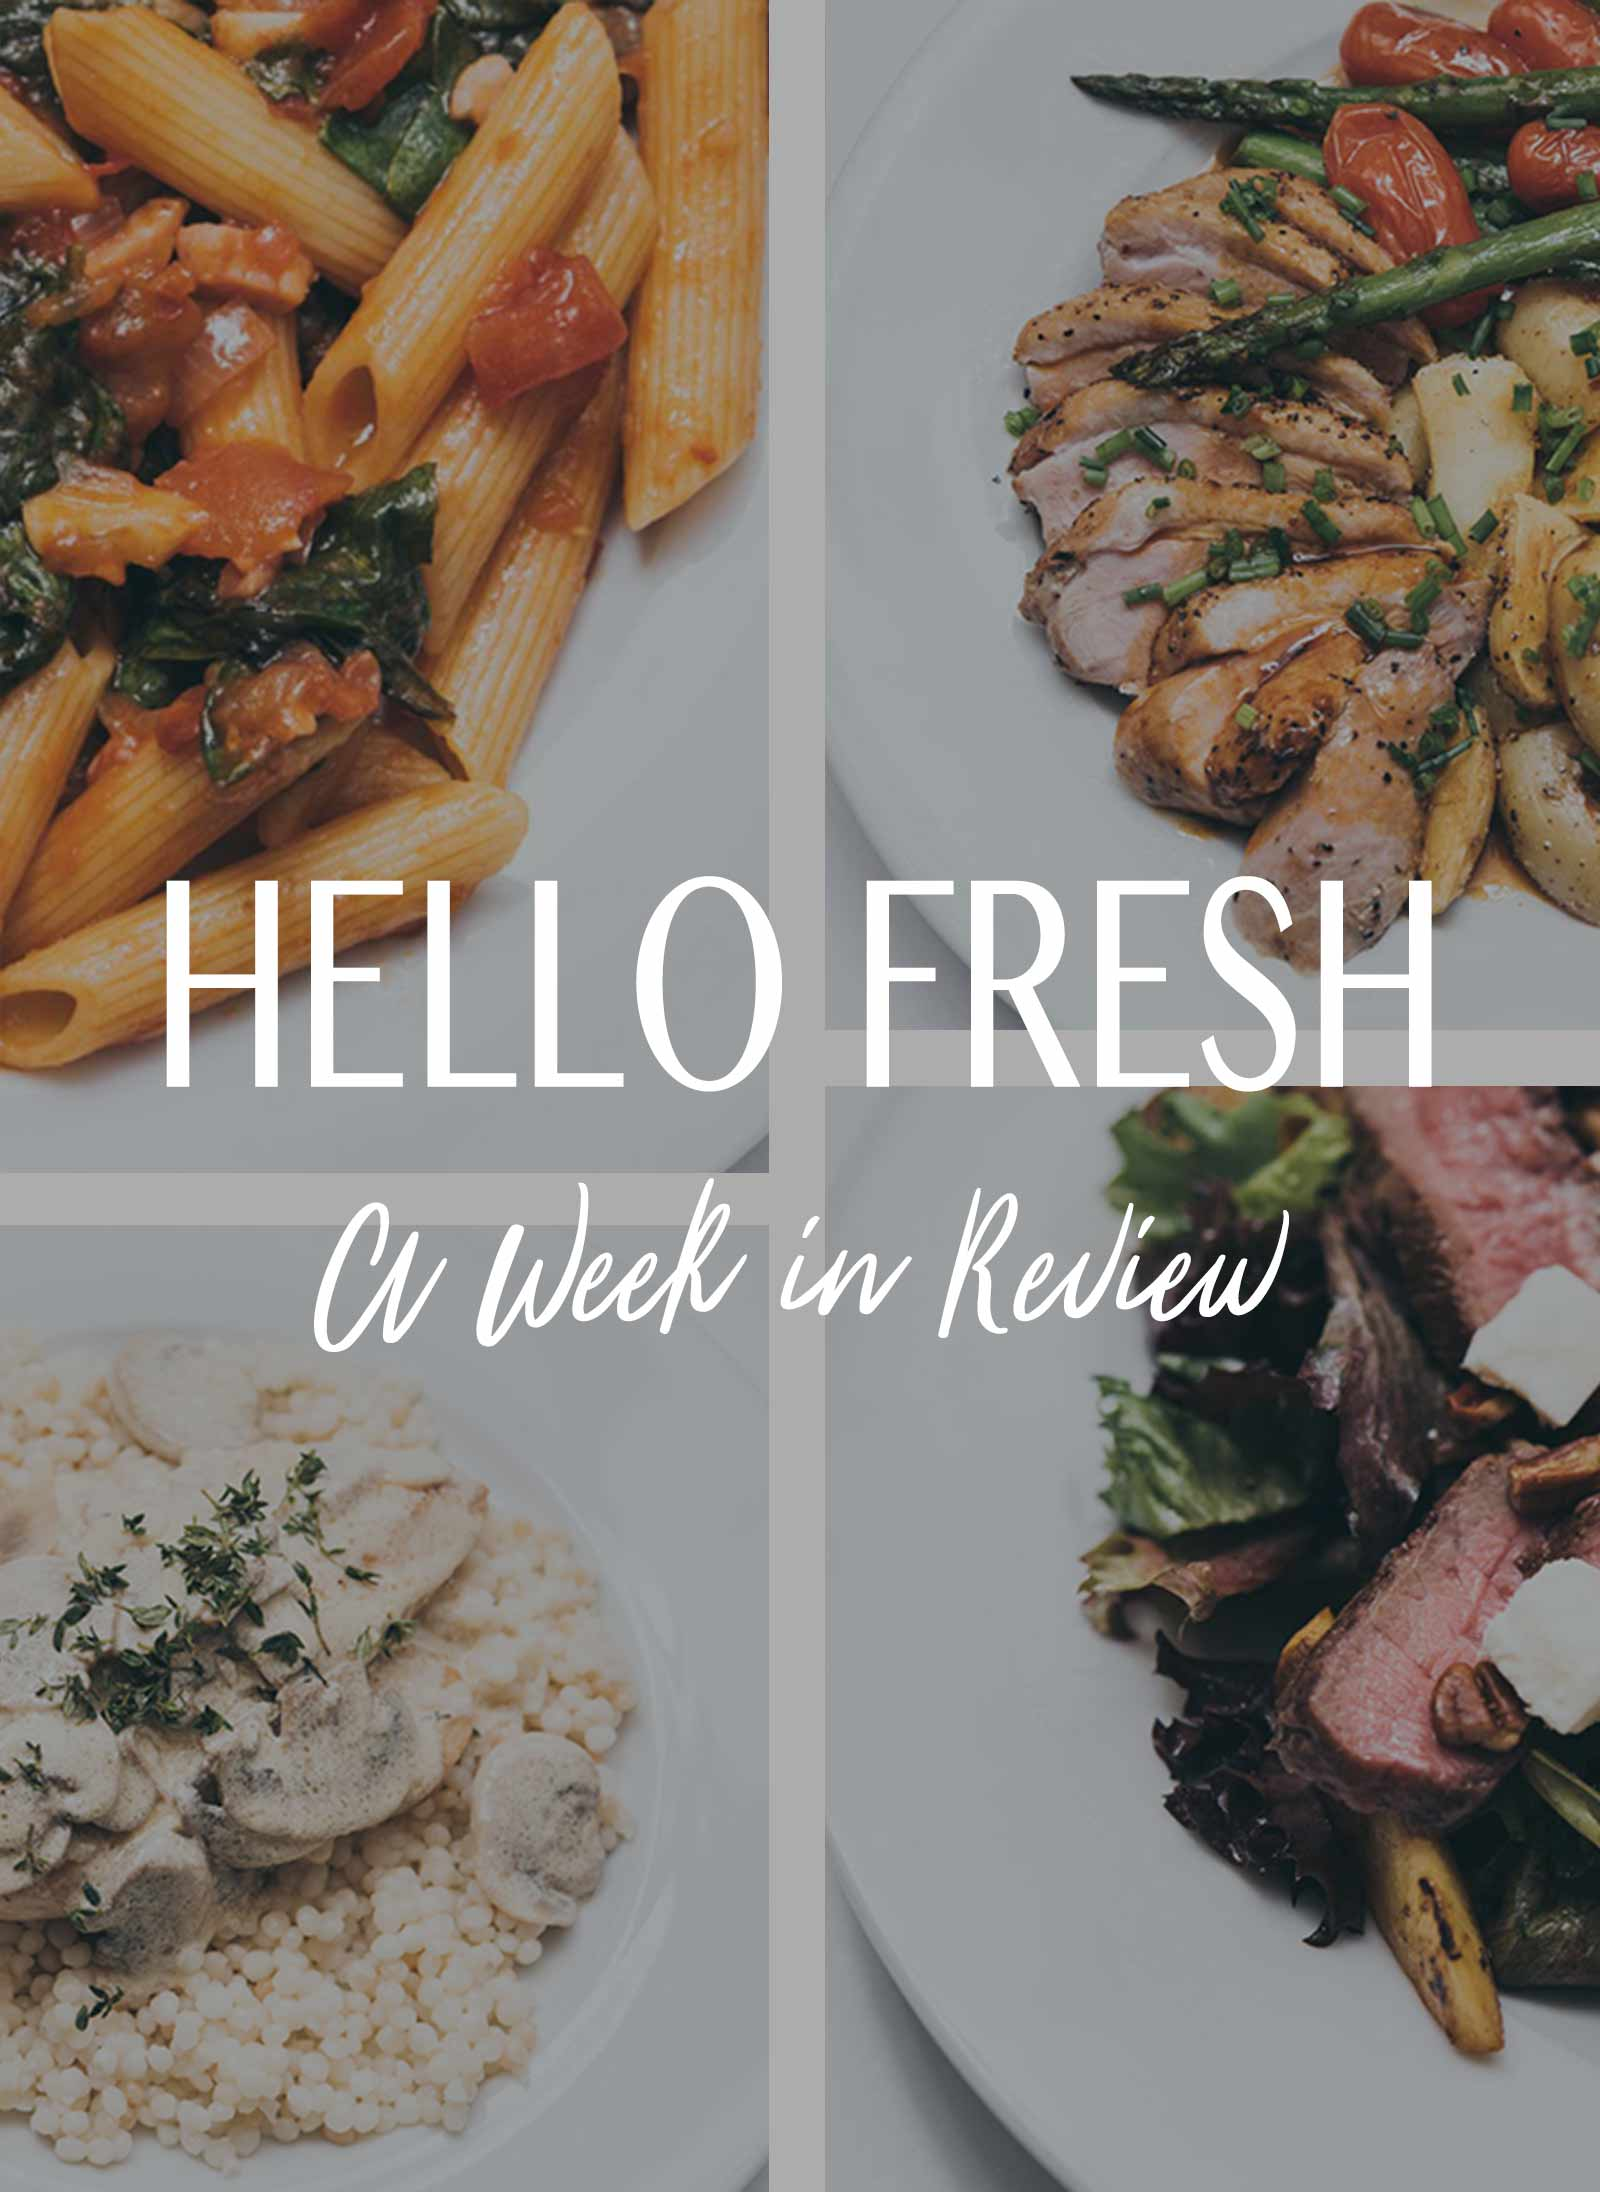 Hellofresh Meal Kit Delivery Service  Difference